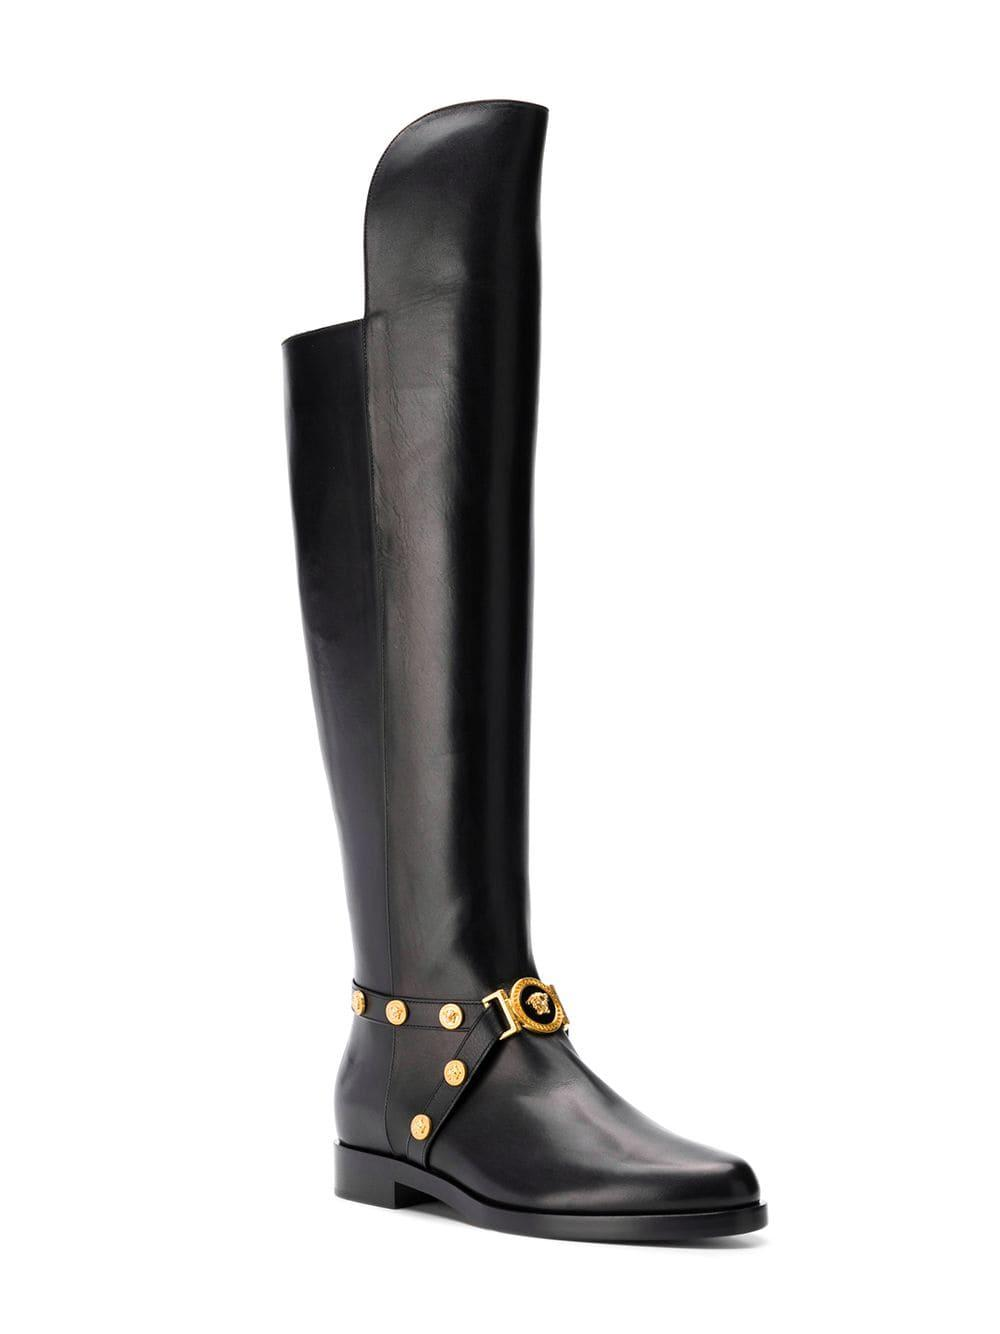 5a8adfeae43 Lyst - Versace Tribute Knee-high Boots in Black